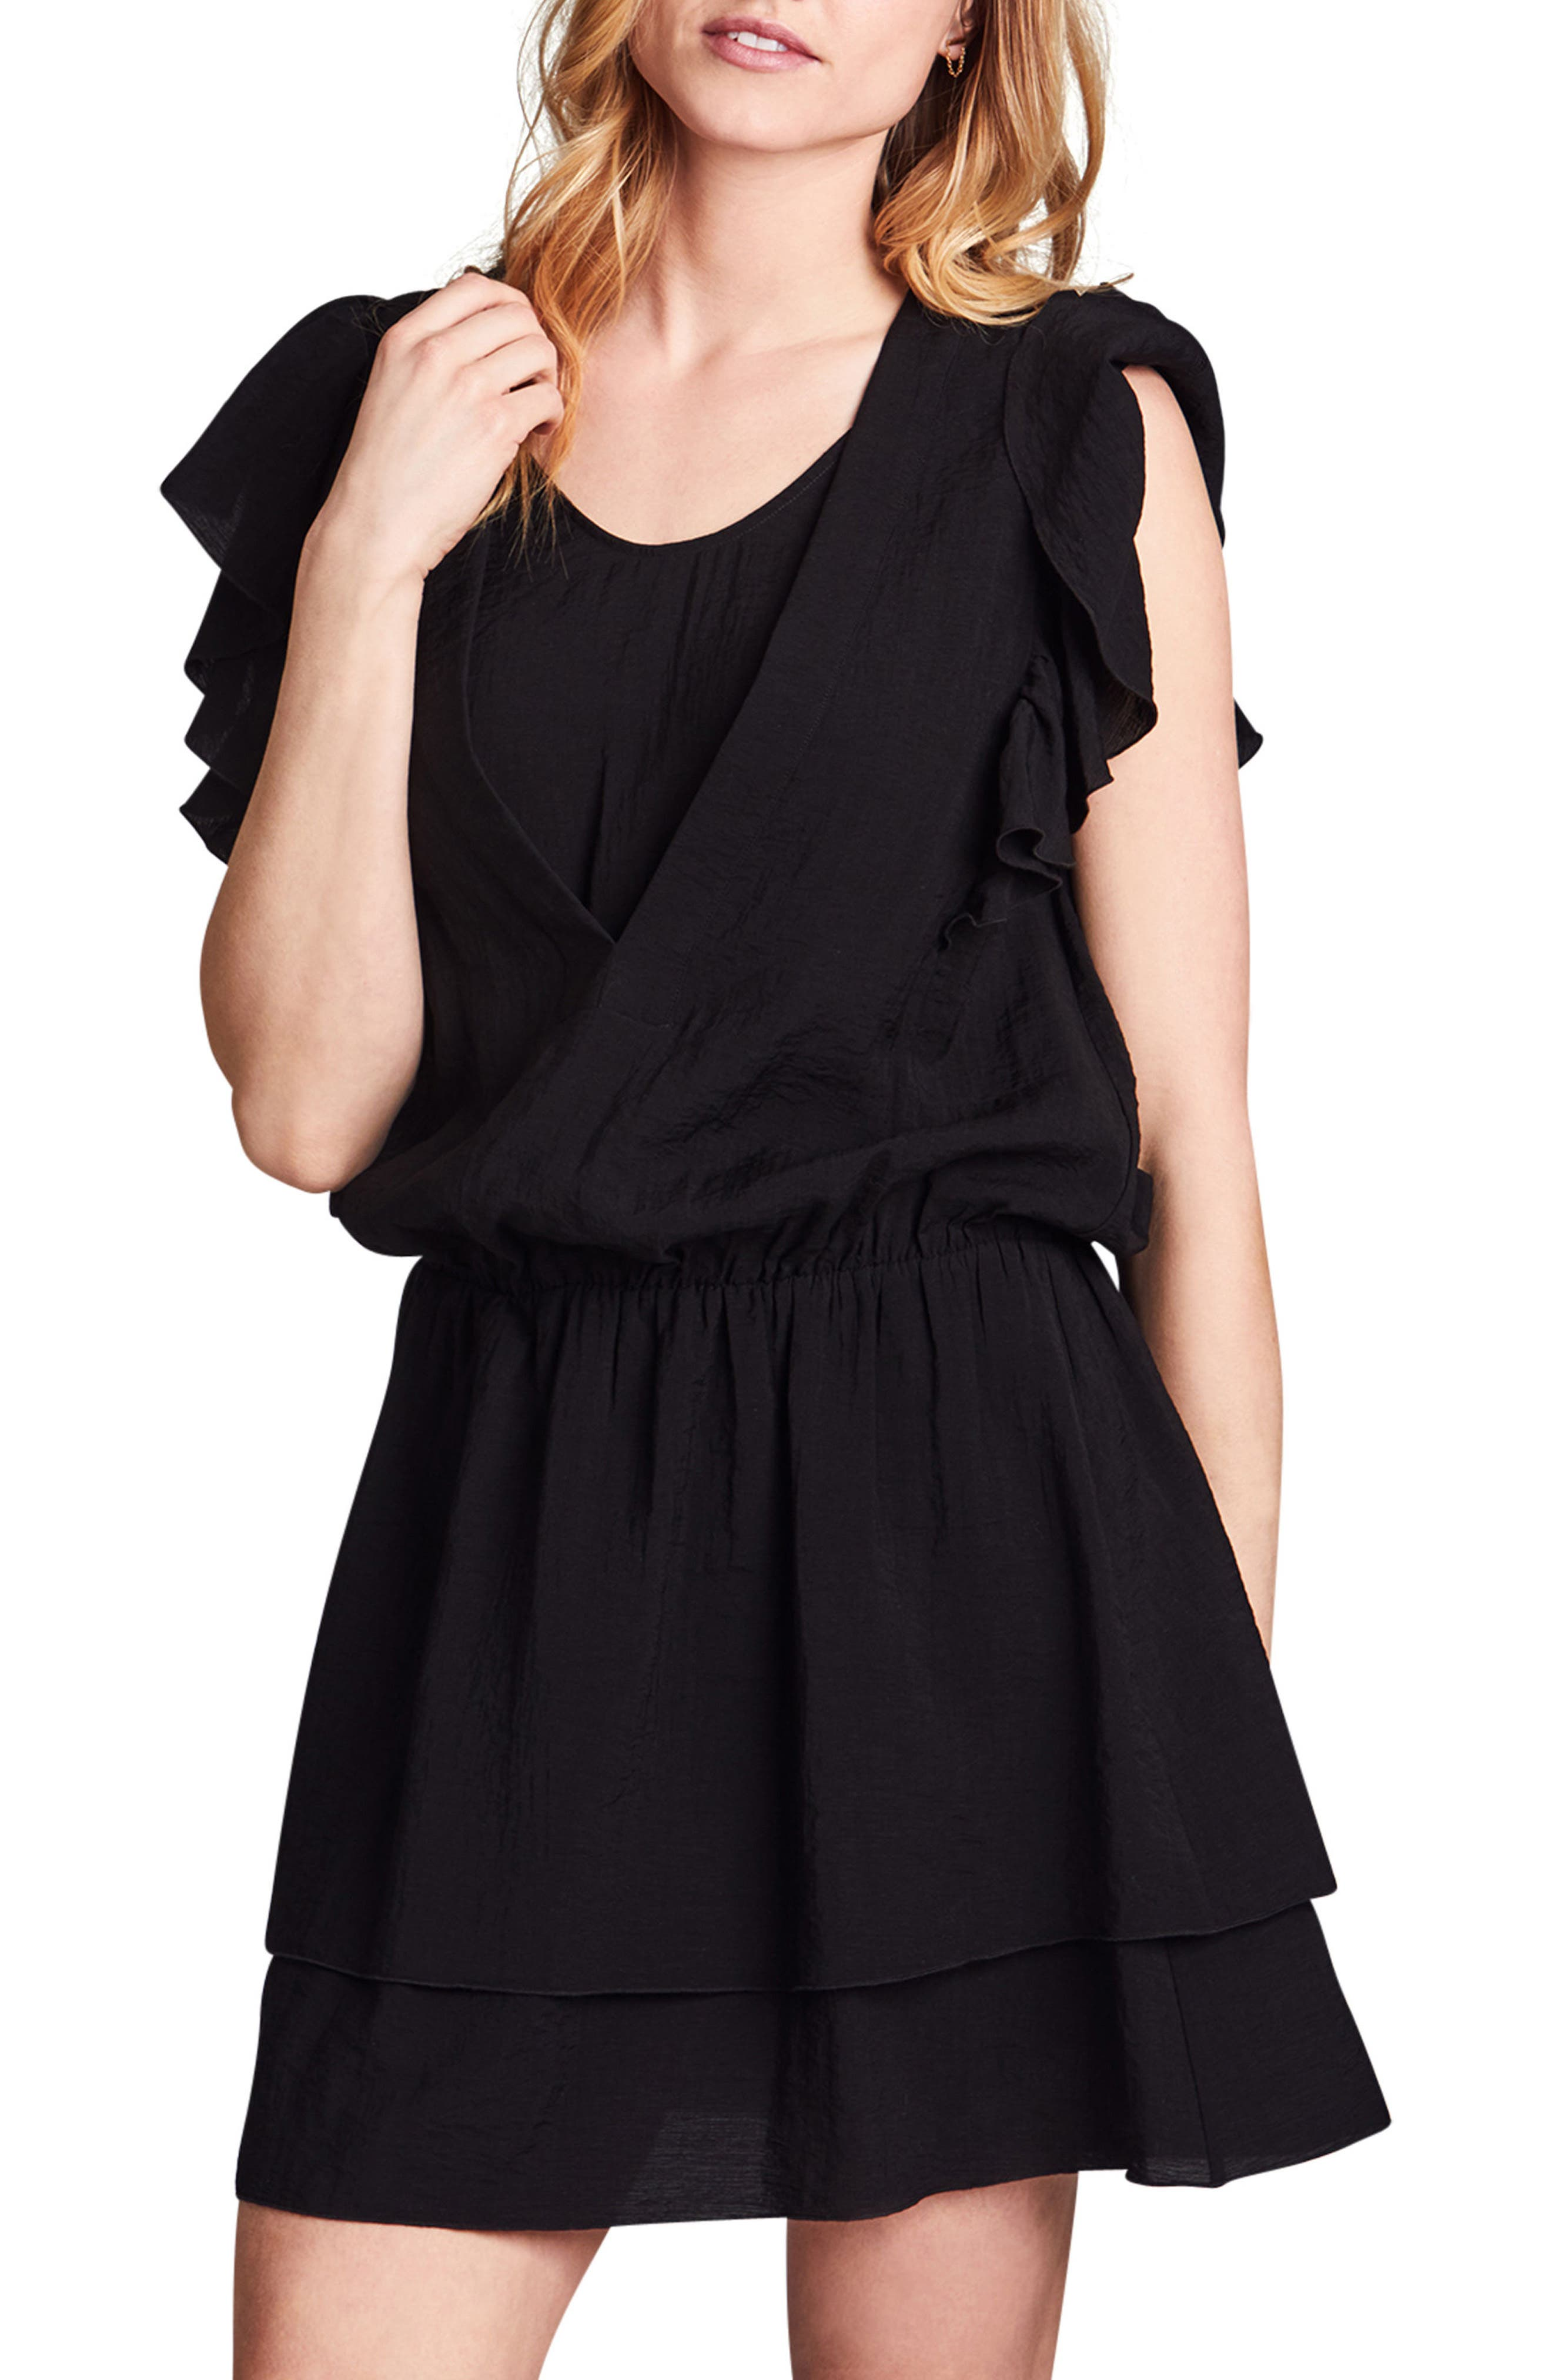 Naomi Nursing Dress,                             Main thumbnail 1, color,                             BLACK